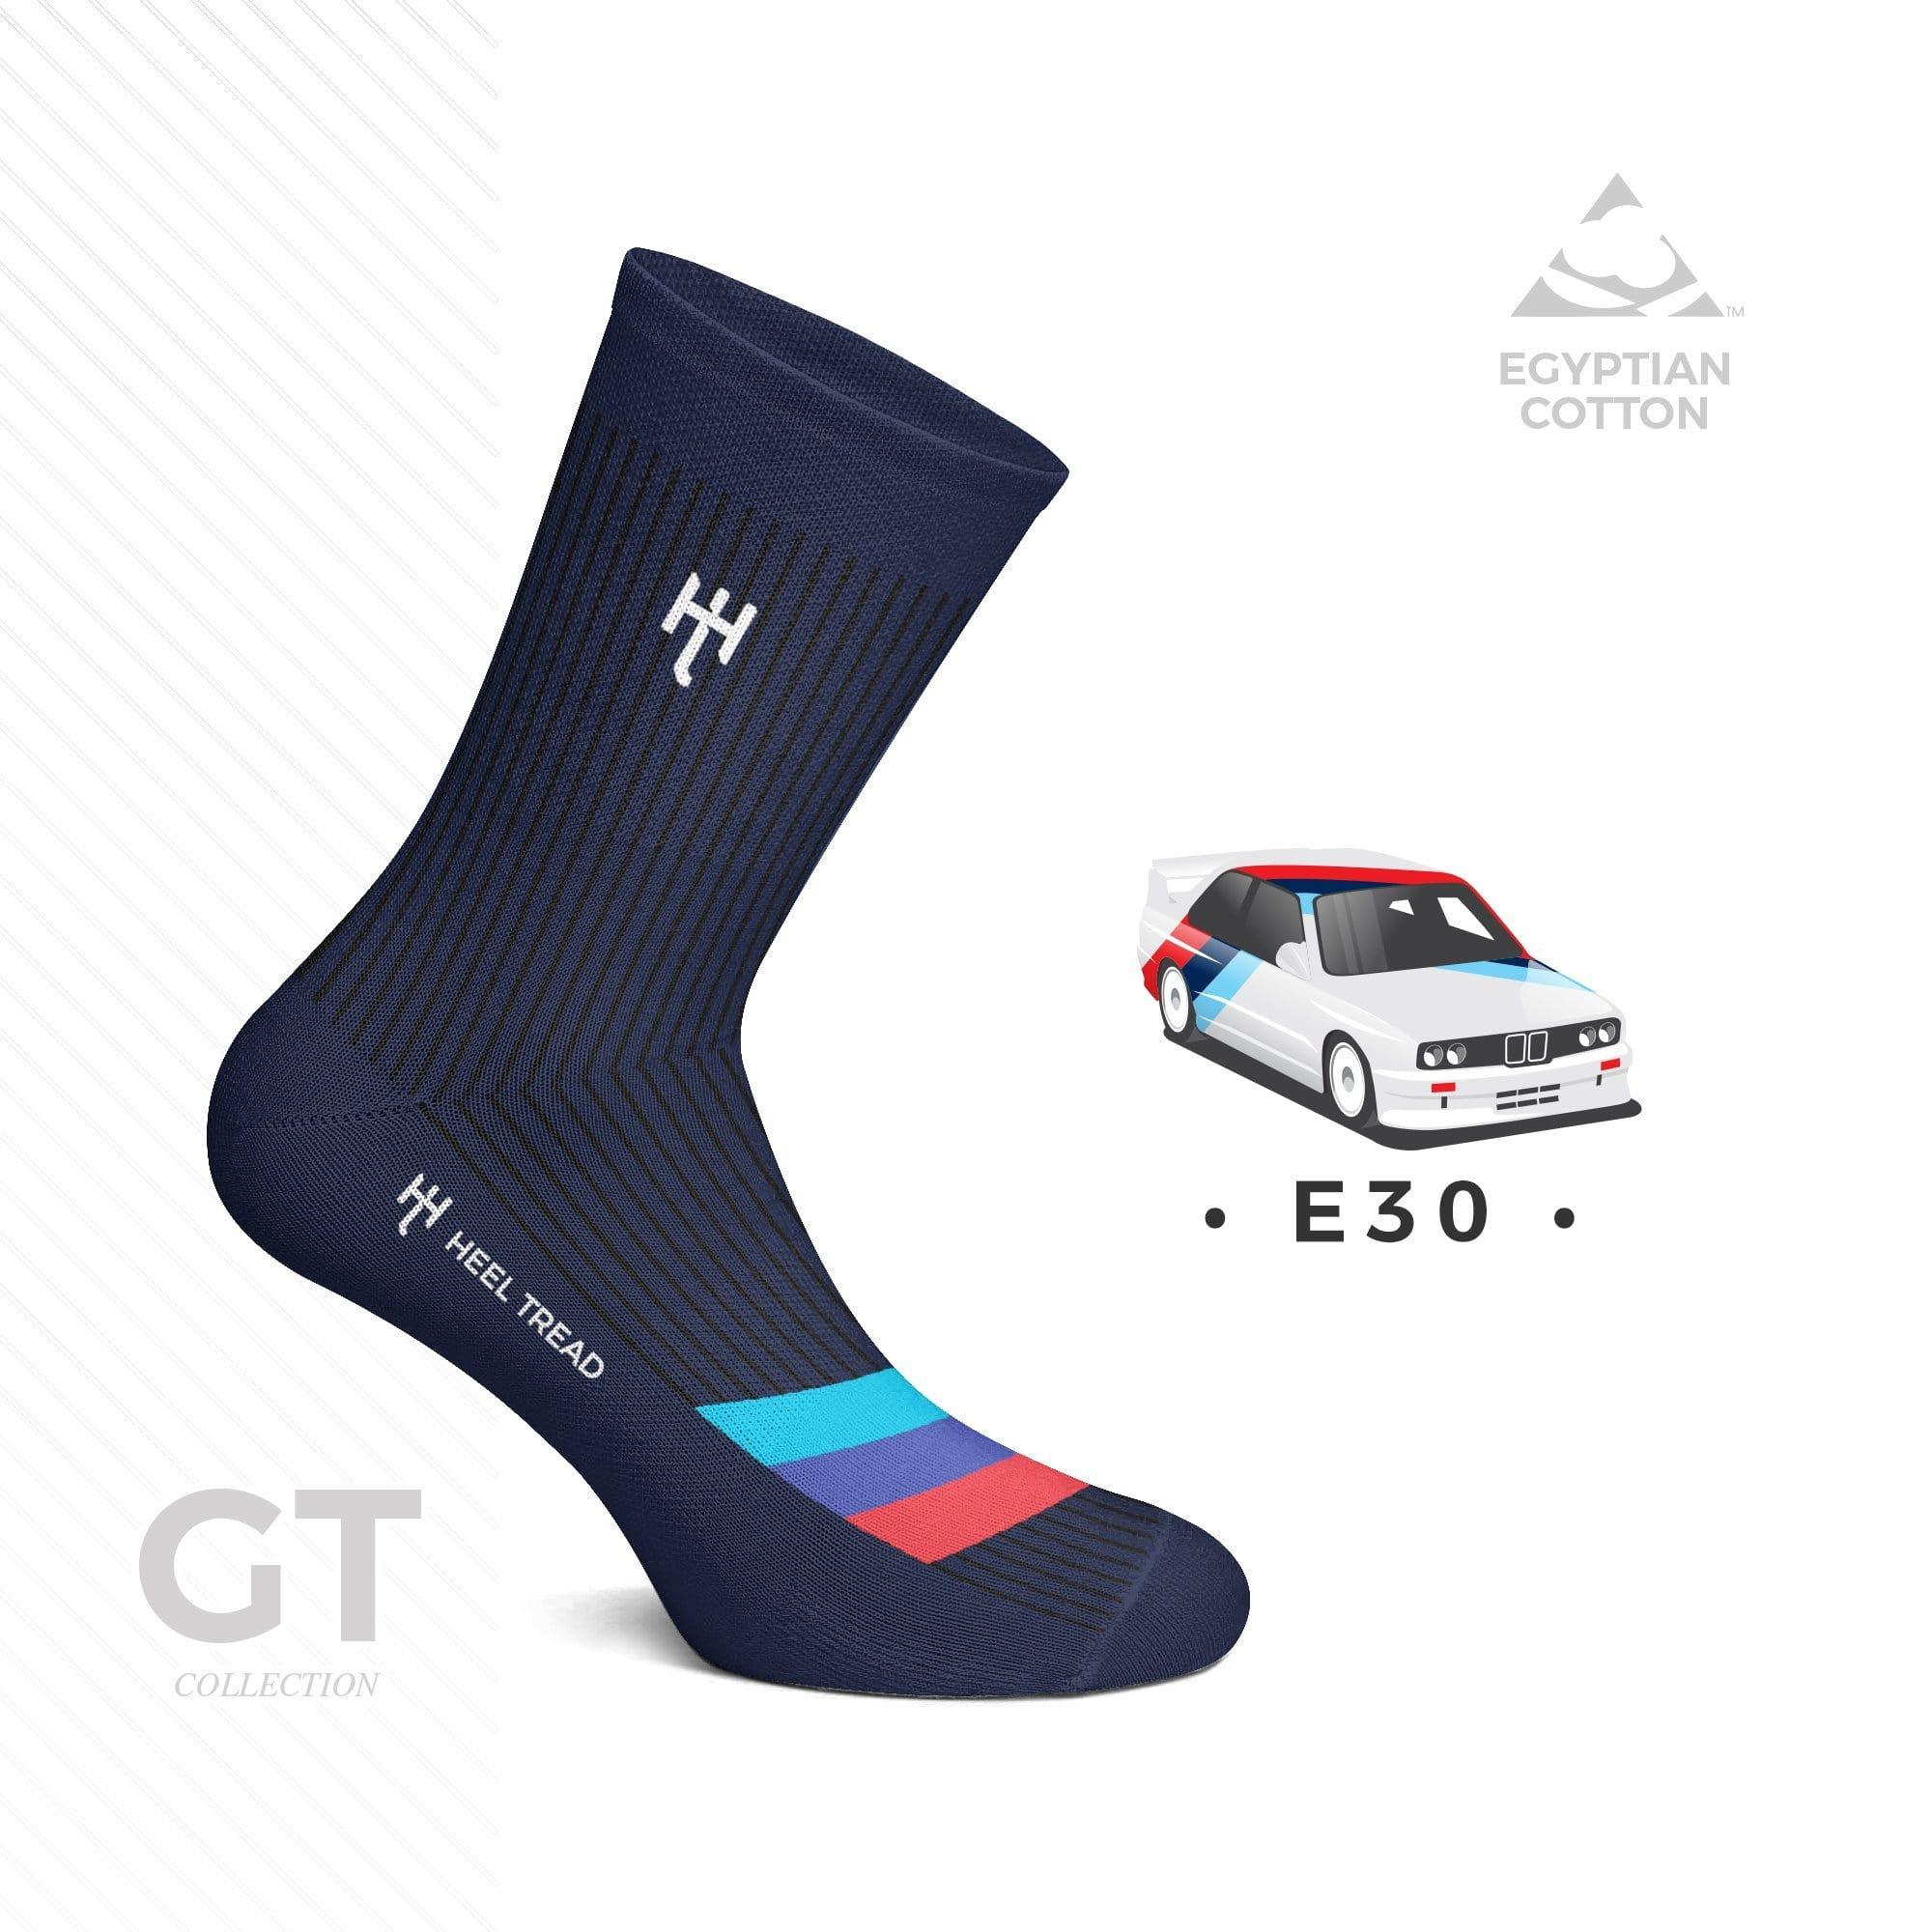 E30 GT SOCKS - Corleon